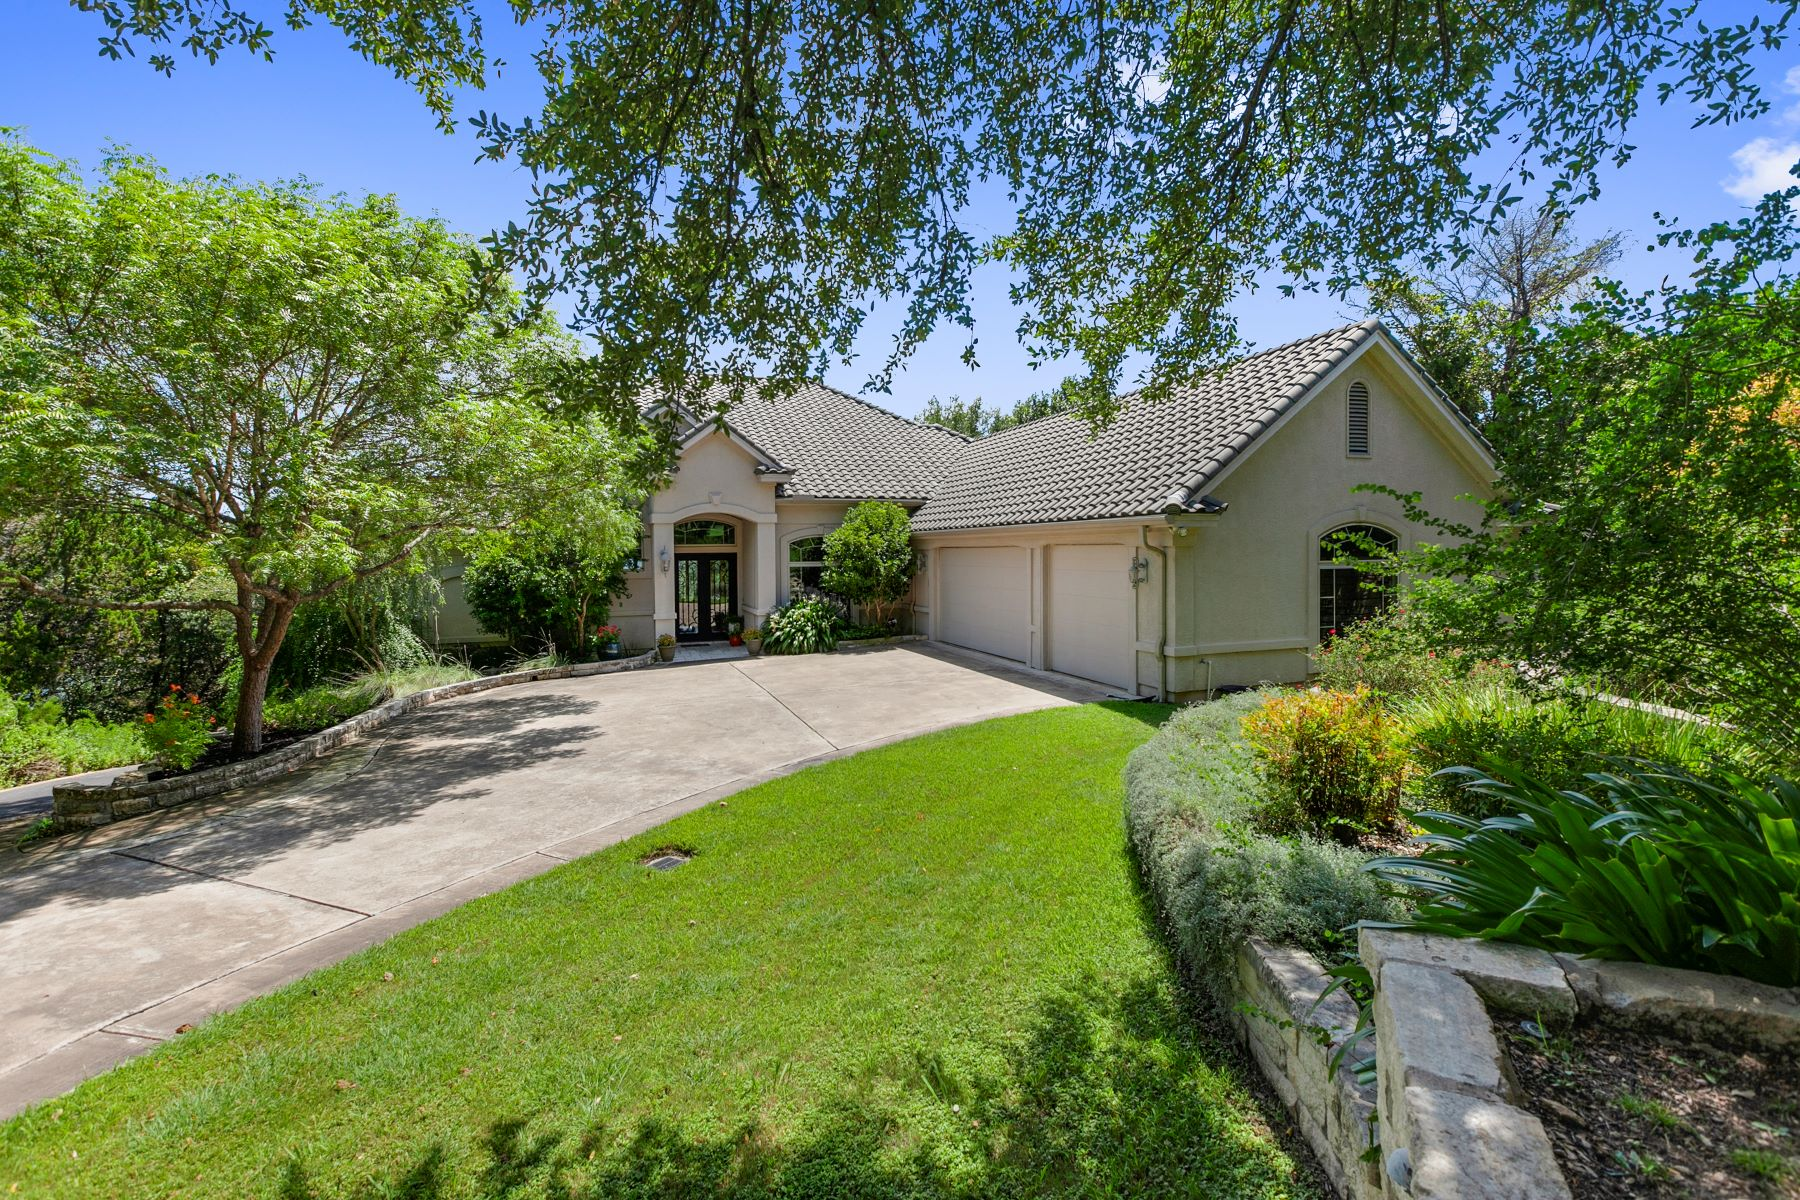 Single Family Homes for Active at 8917 Northlake Hills Circle, Jonestown, TX 78645 8917 Northlake Hills Circle Jonestown, Texas 78645 United States